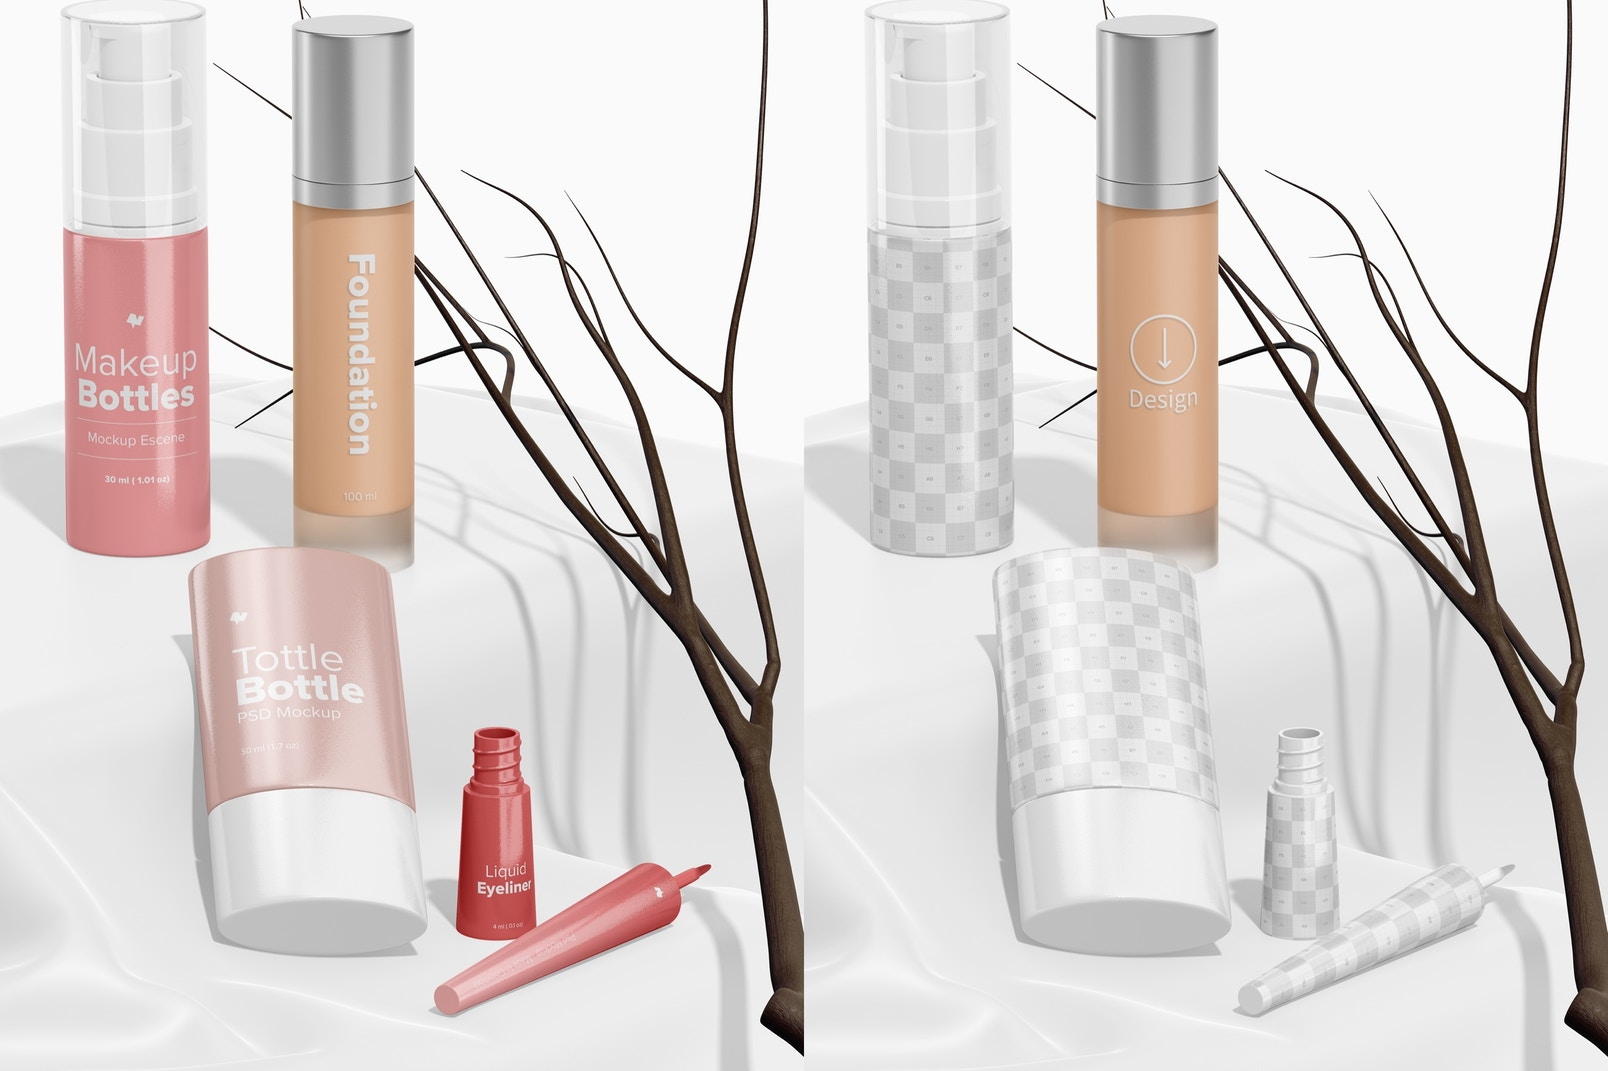 Makeup Bottles Scene Mockup, Standing and Dropped